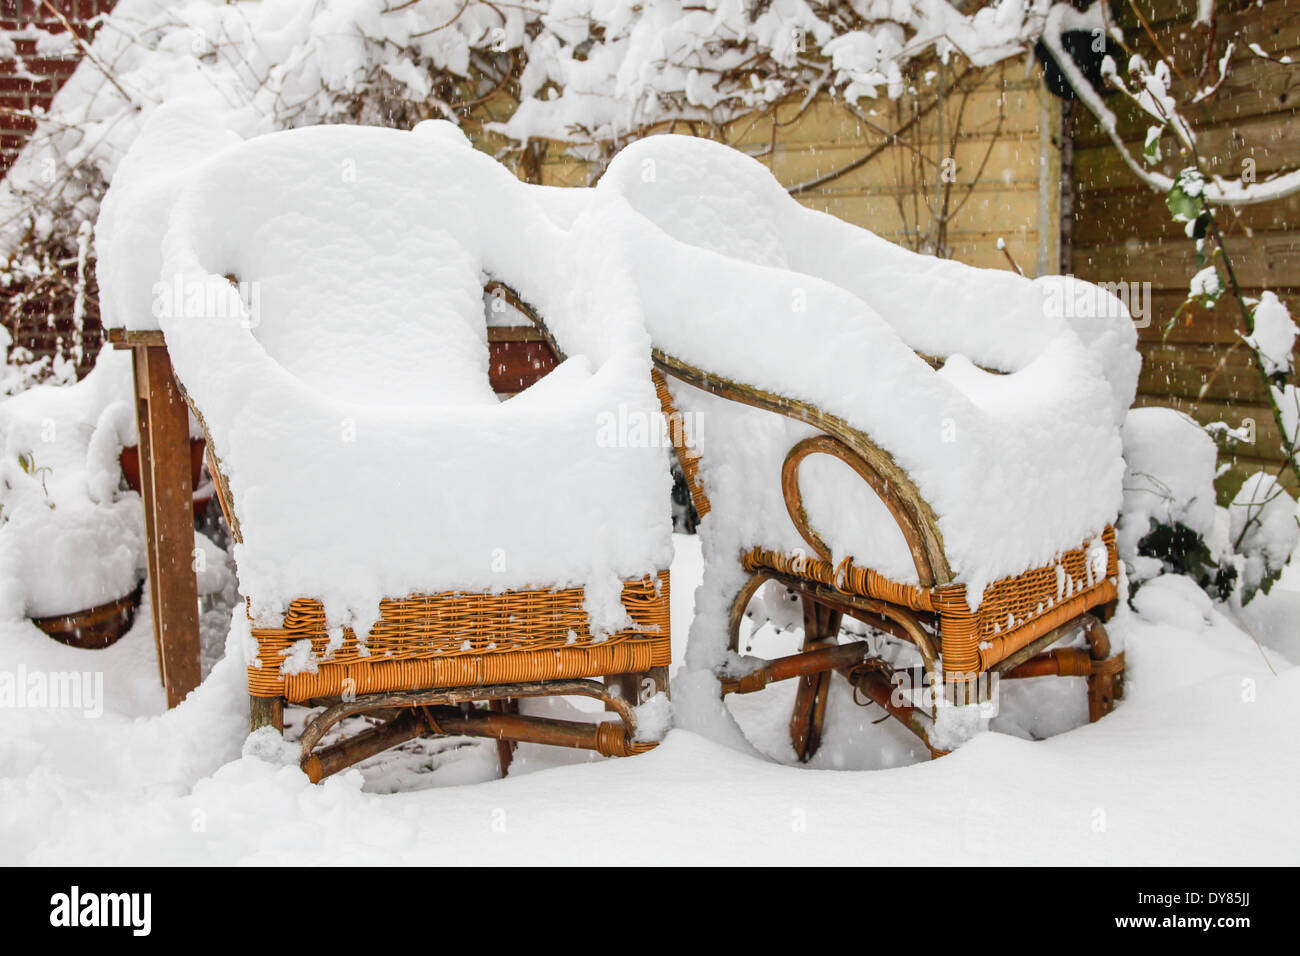 Two Rotan Garden Chairs Heavily Covered With Snow   Stock Image